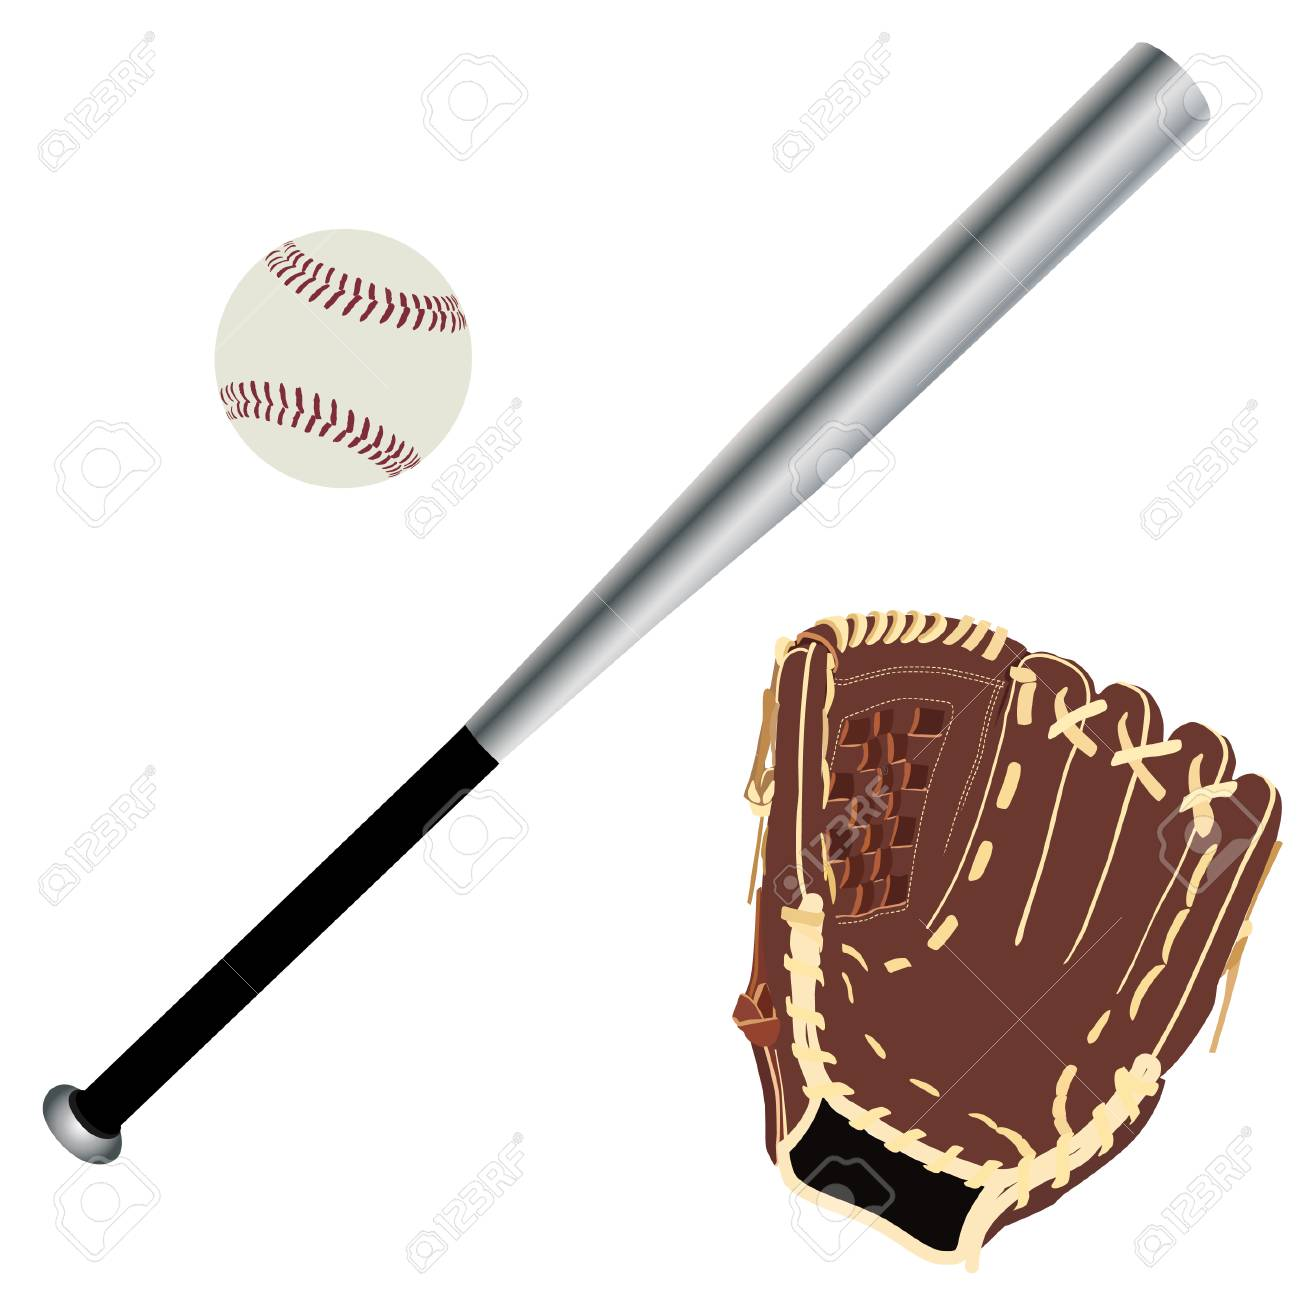 Baseball Glove Baseball Bat Baseball Ball Sport Equipment Royalty